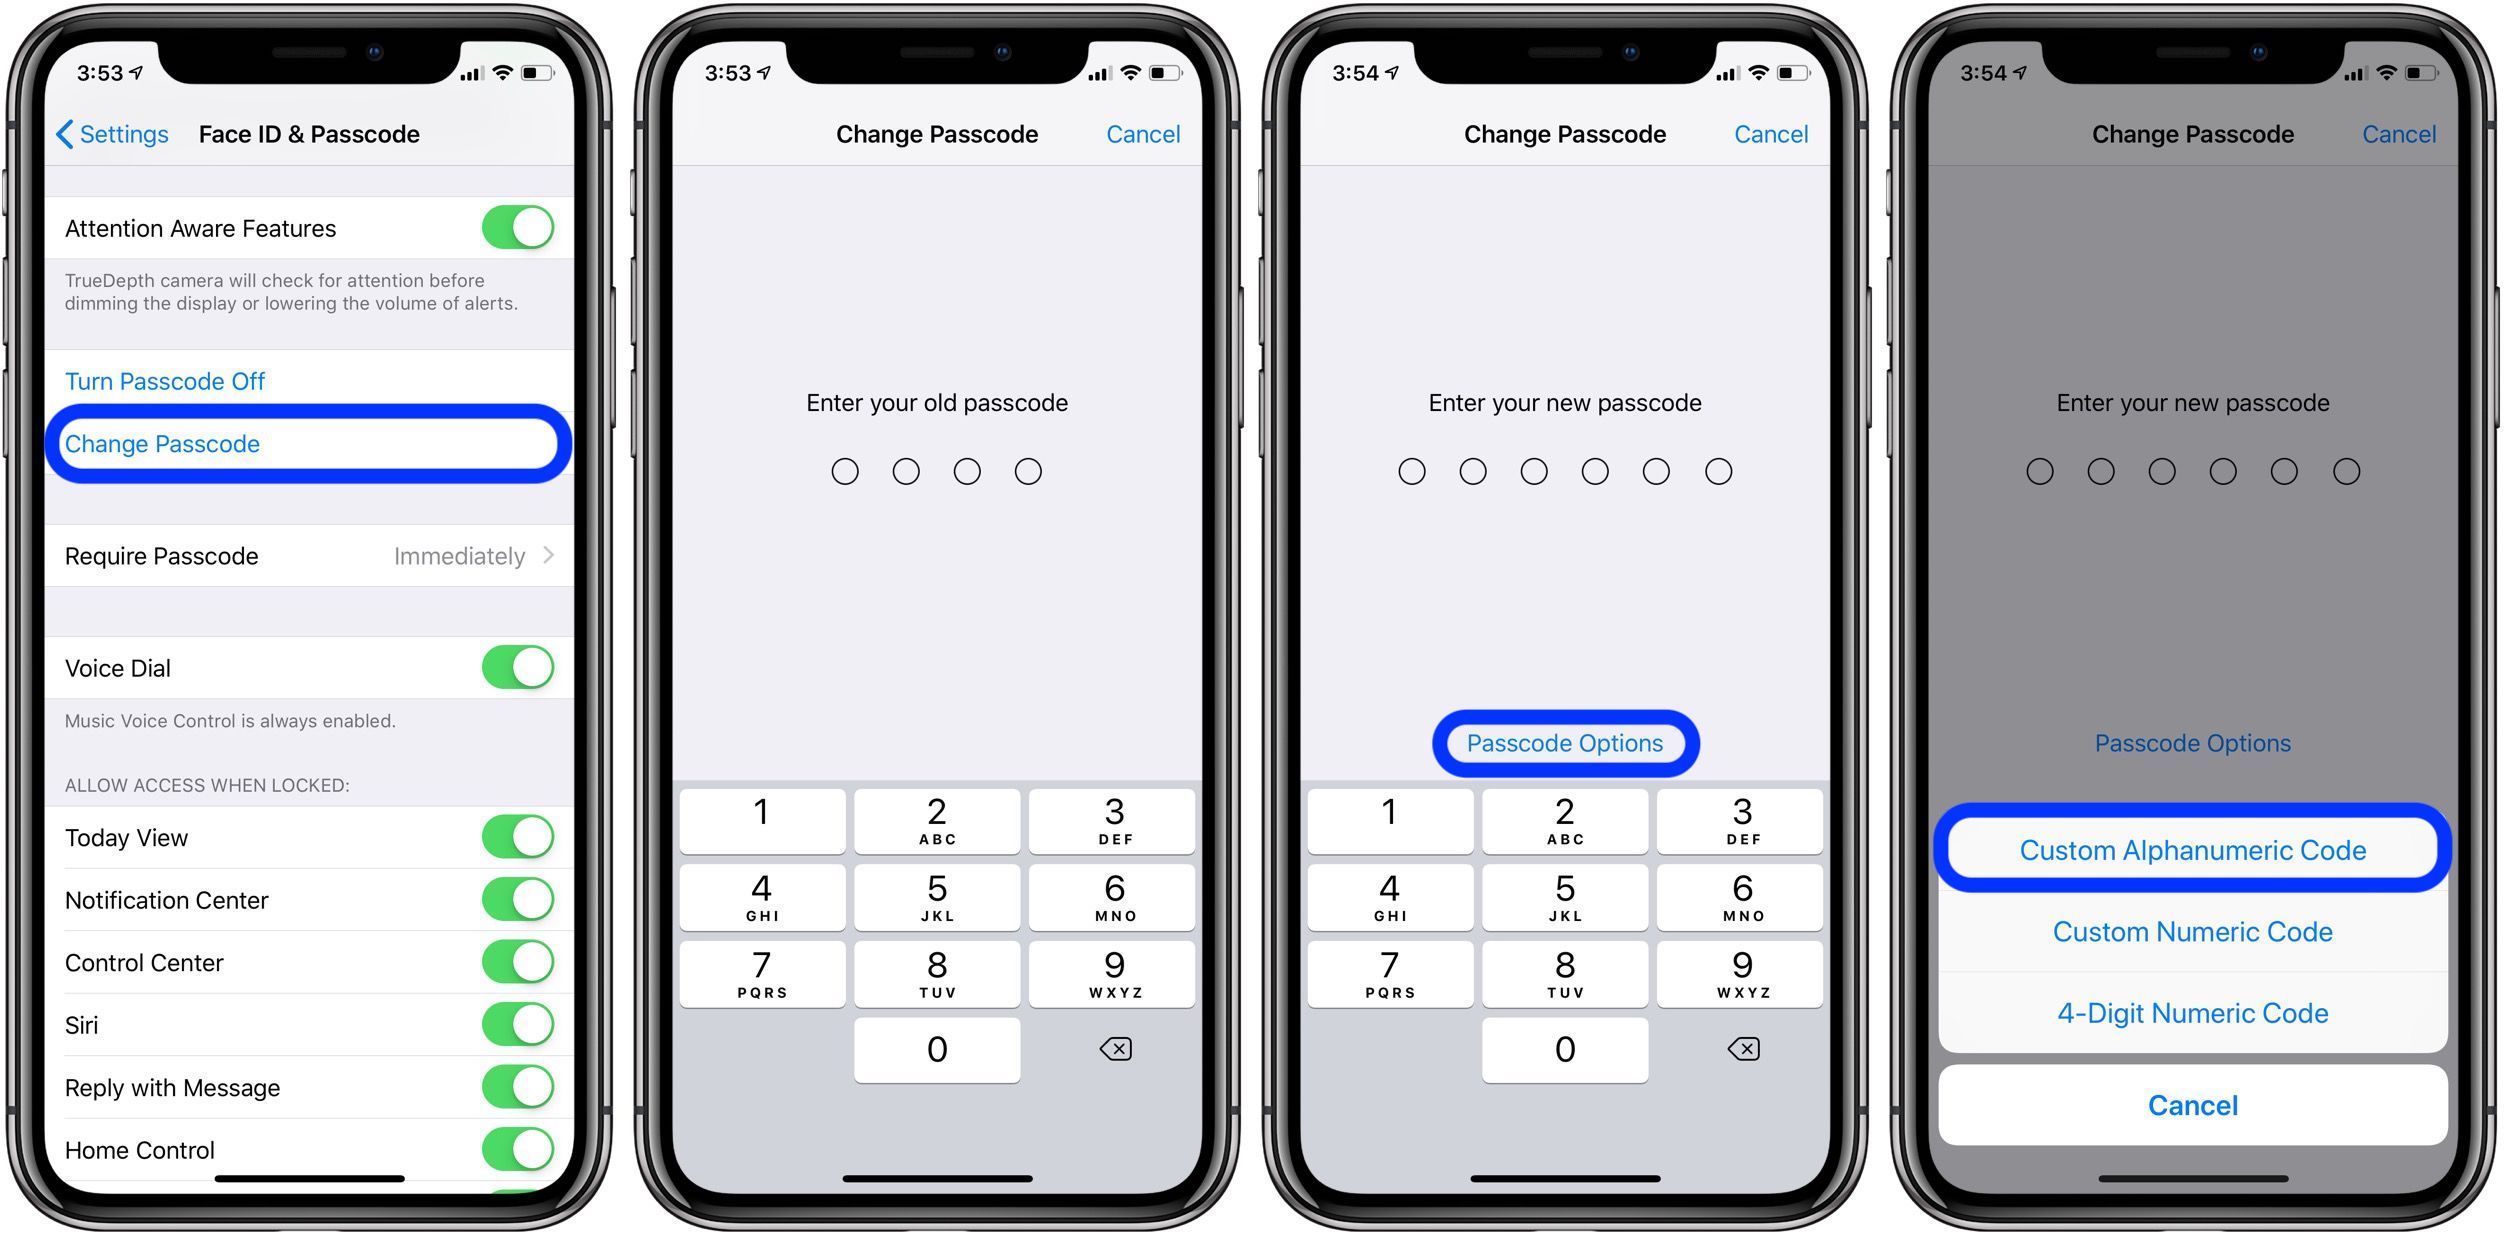 How to use a custom alphanumeric passcode on iPhone - 9to5Mac